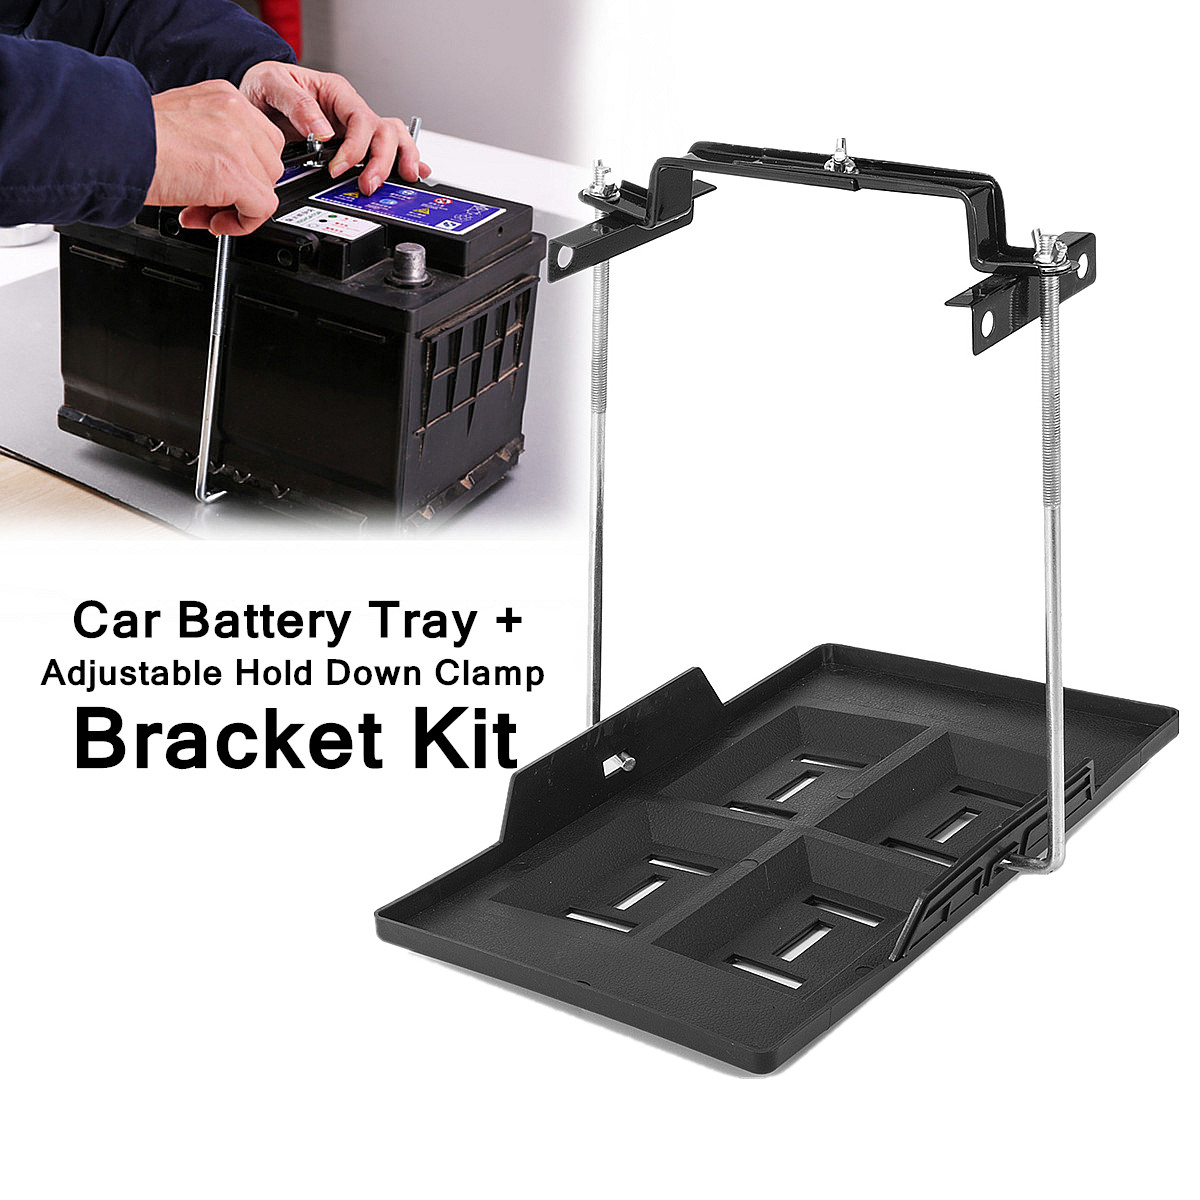 35 5x20cm Metal Car Battery Tray Adjule Hold Down Clamp Bracket Kit Cycle Construction Universal Recessed Slots Design